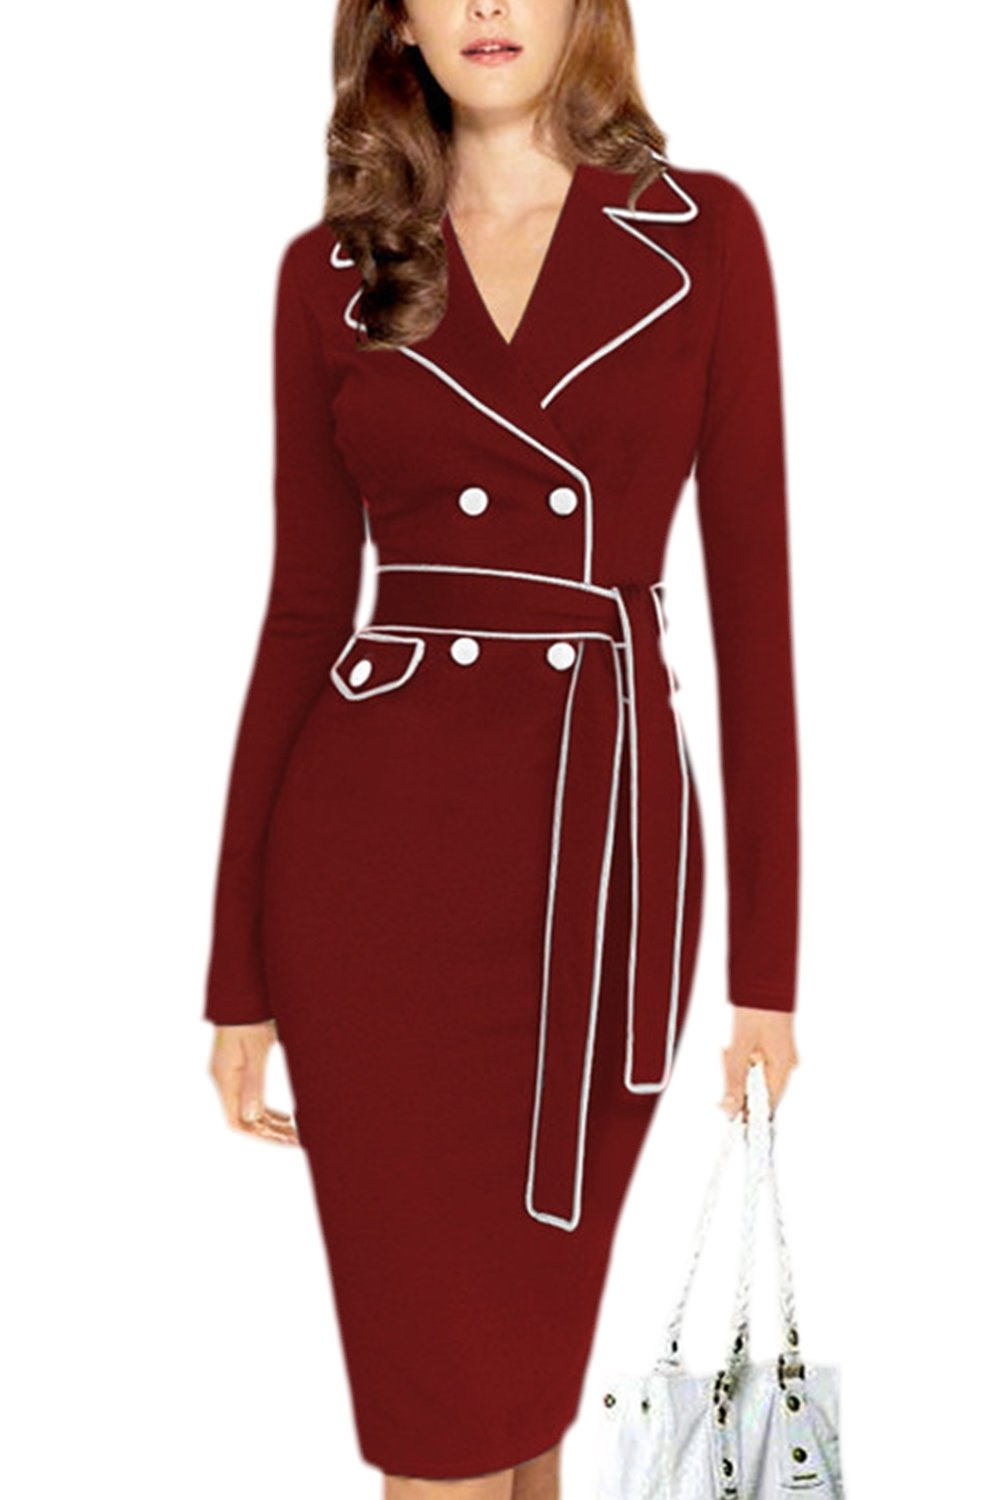 Women Elegant Pencil Bodycon Business Suit Dress with Belt Plus Size CAFZ1296